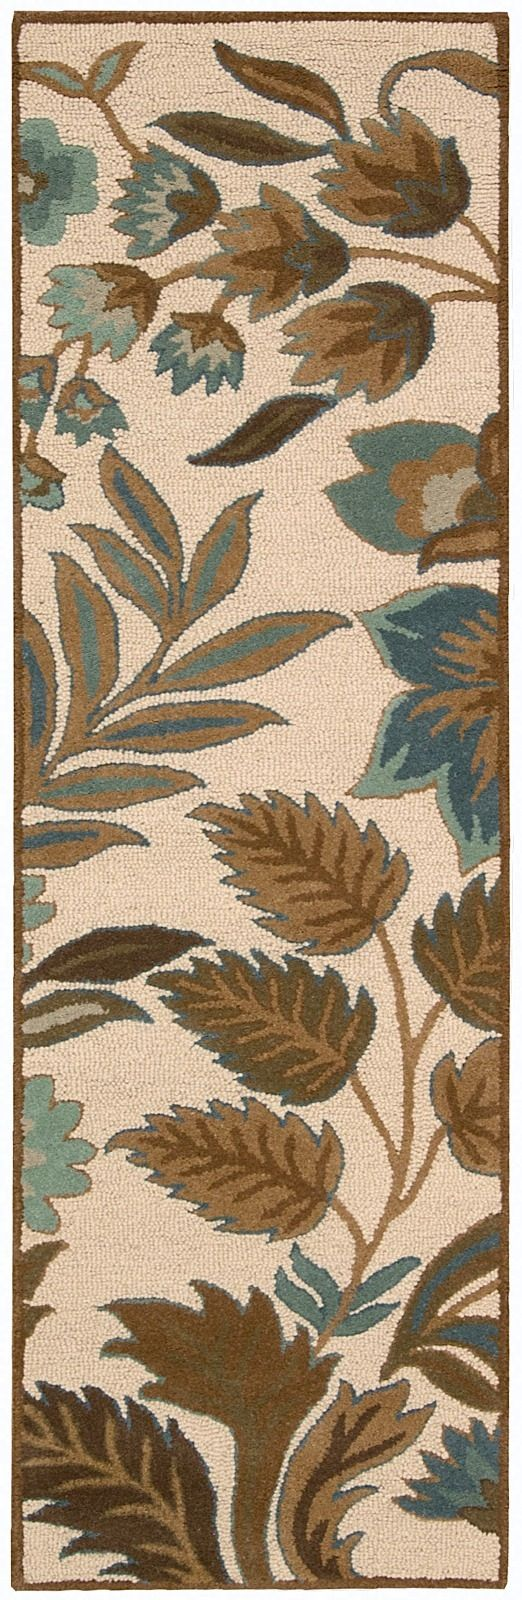 nourison in bloom country & floral area rug collection